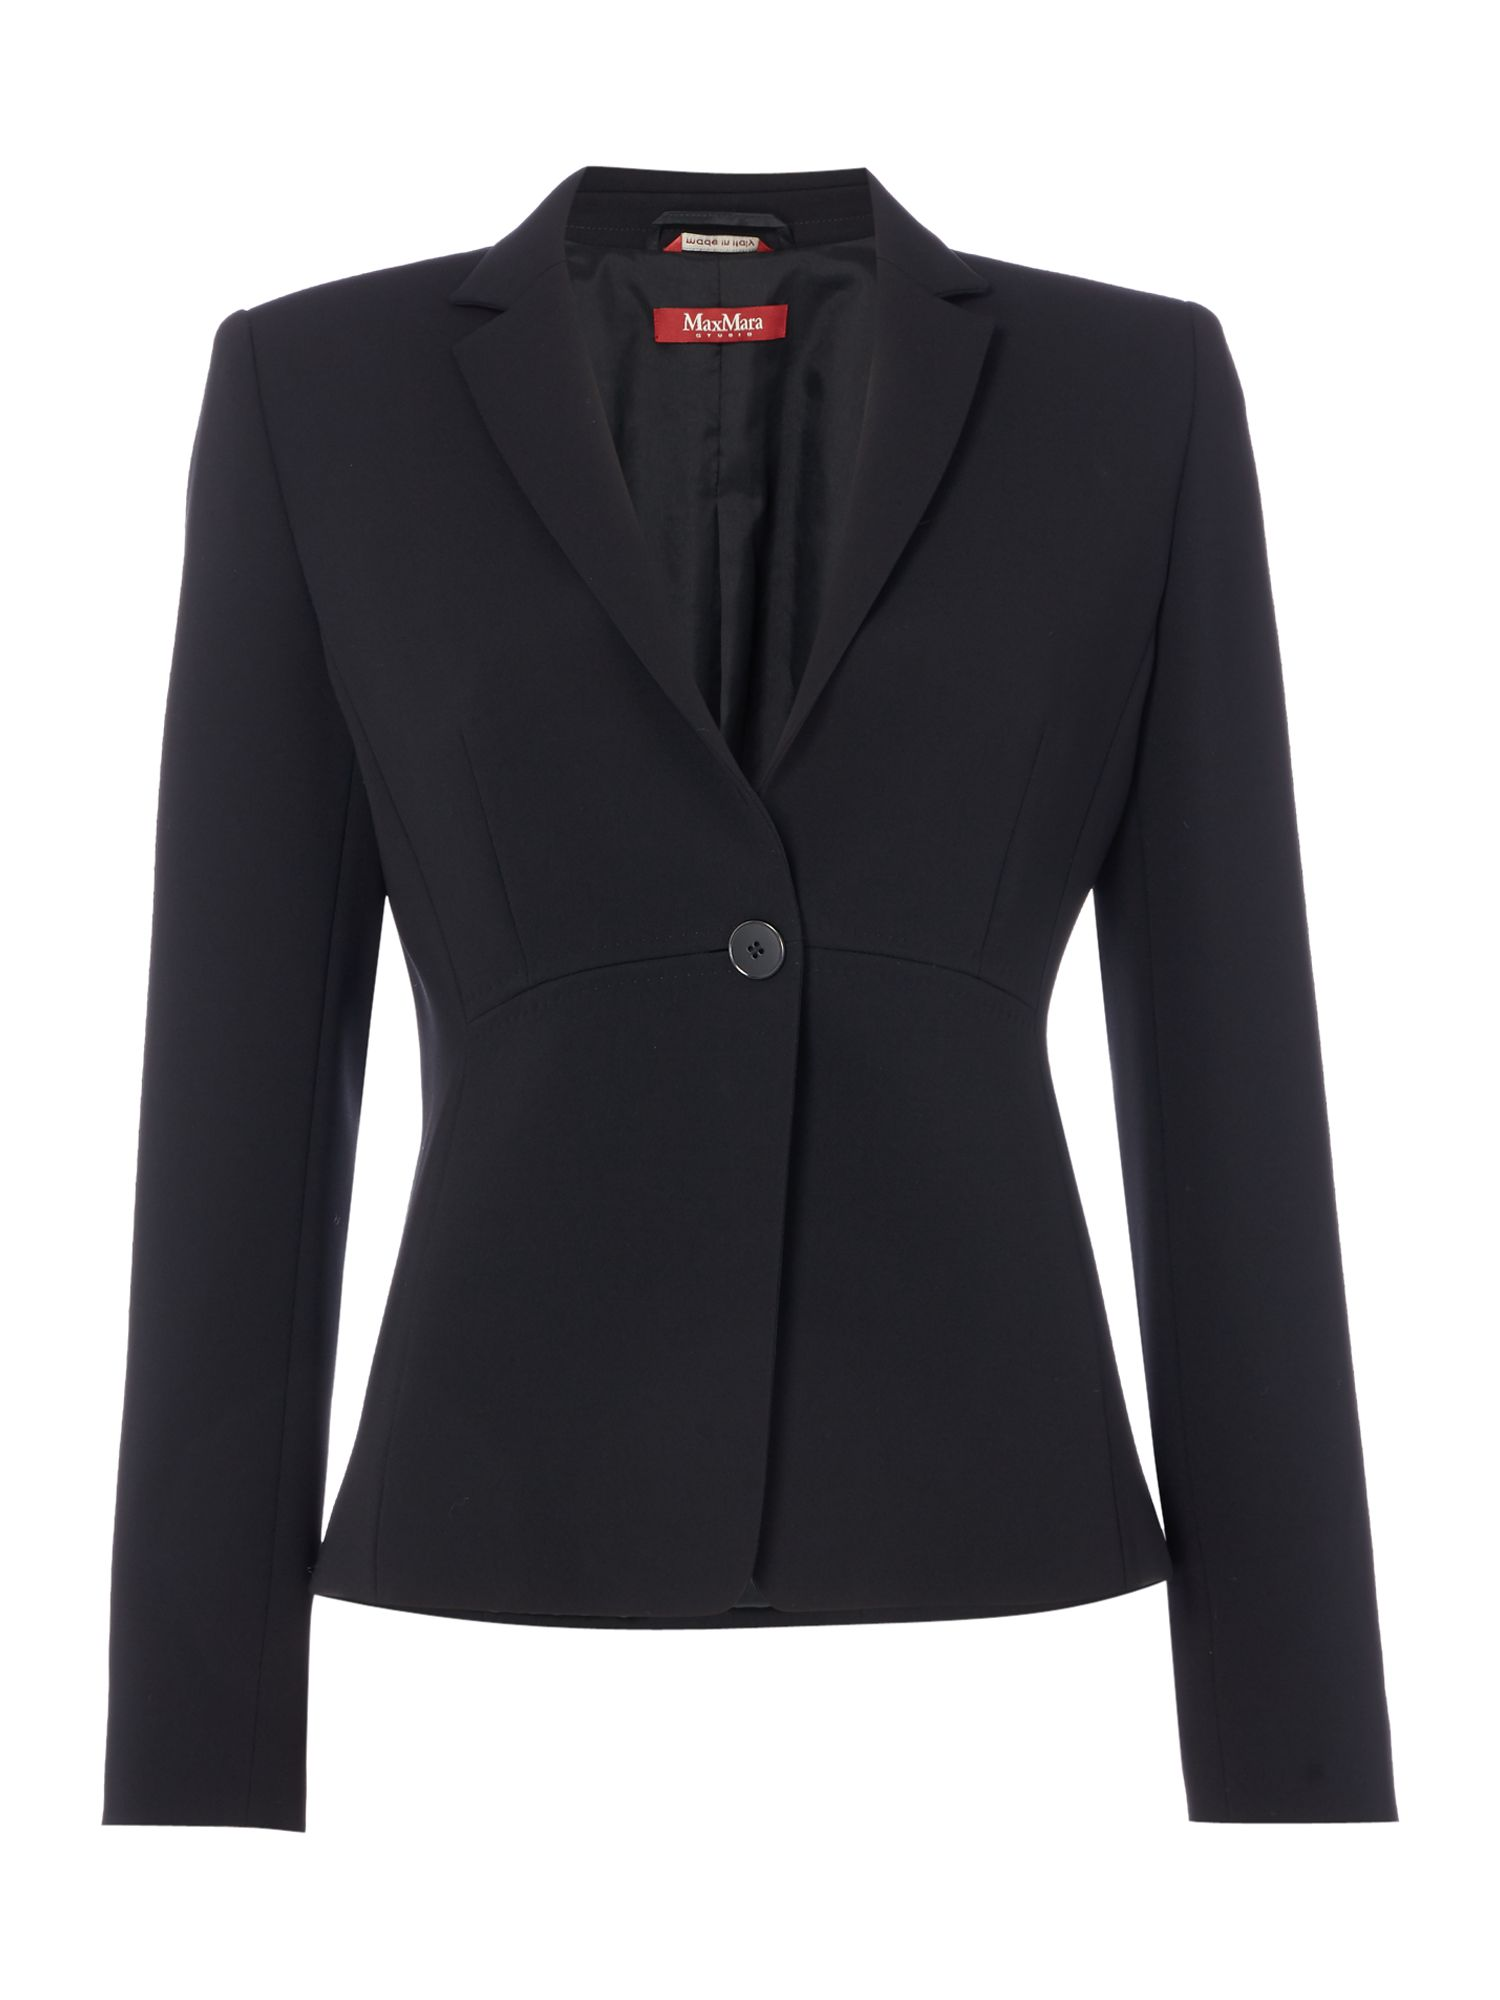 Max Mara Studio Solista longsleeve one button blazer, Black